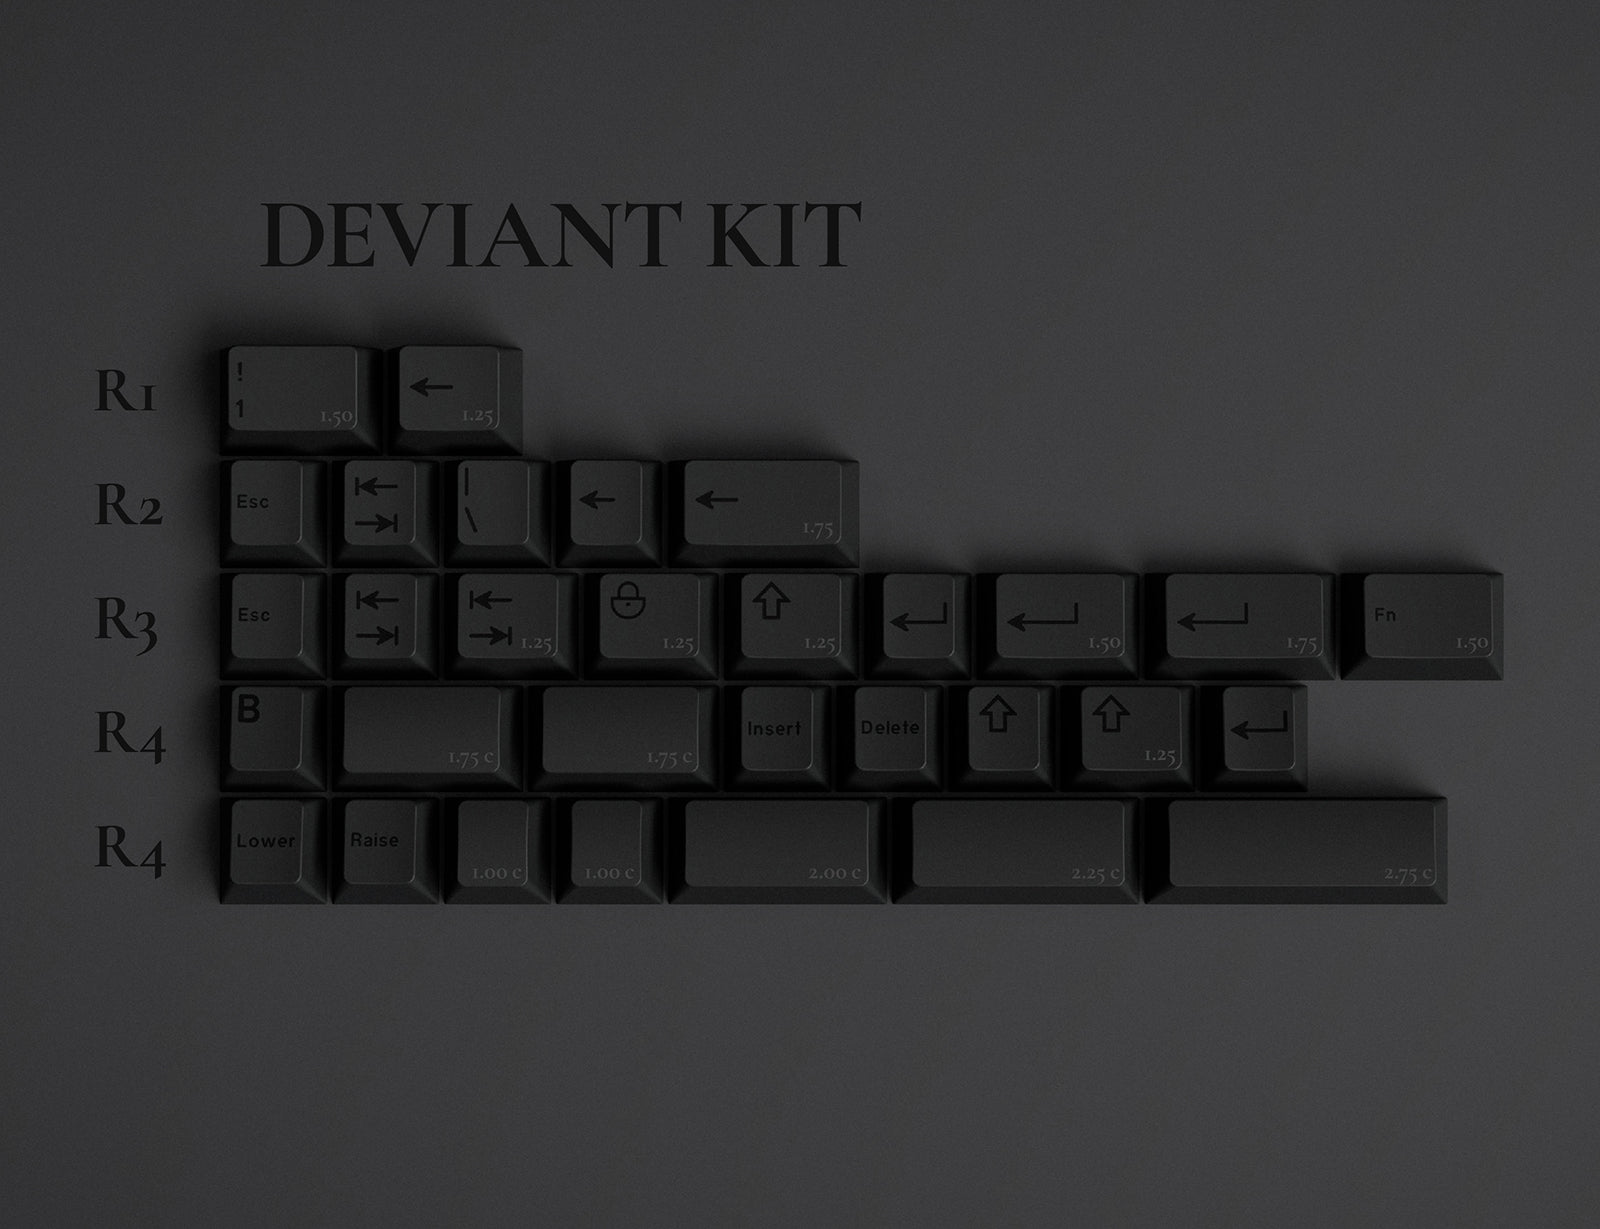 GMK Dark deviant kit